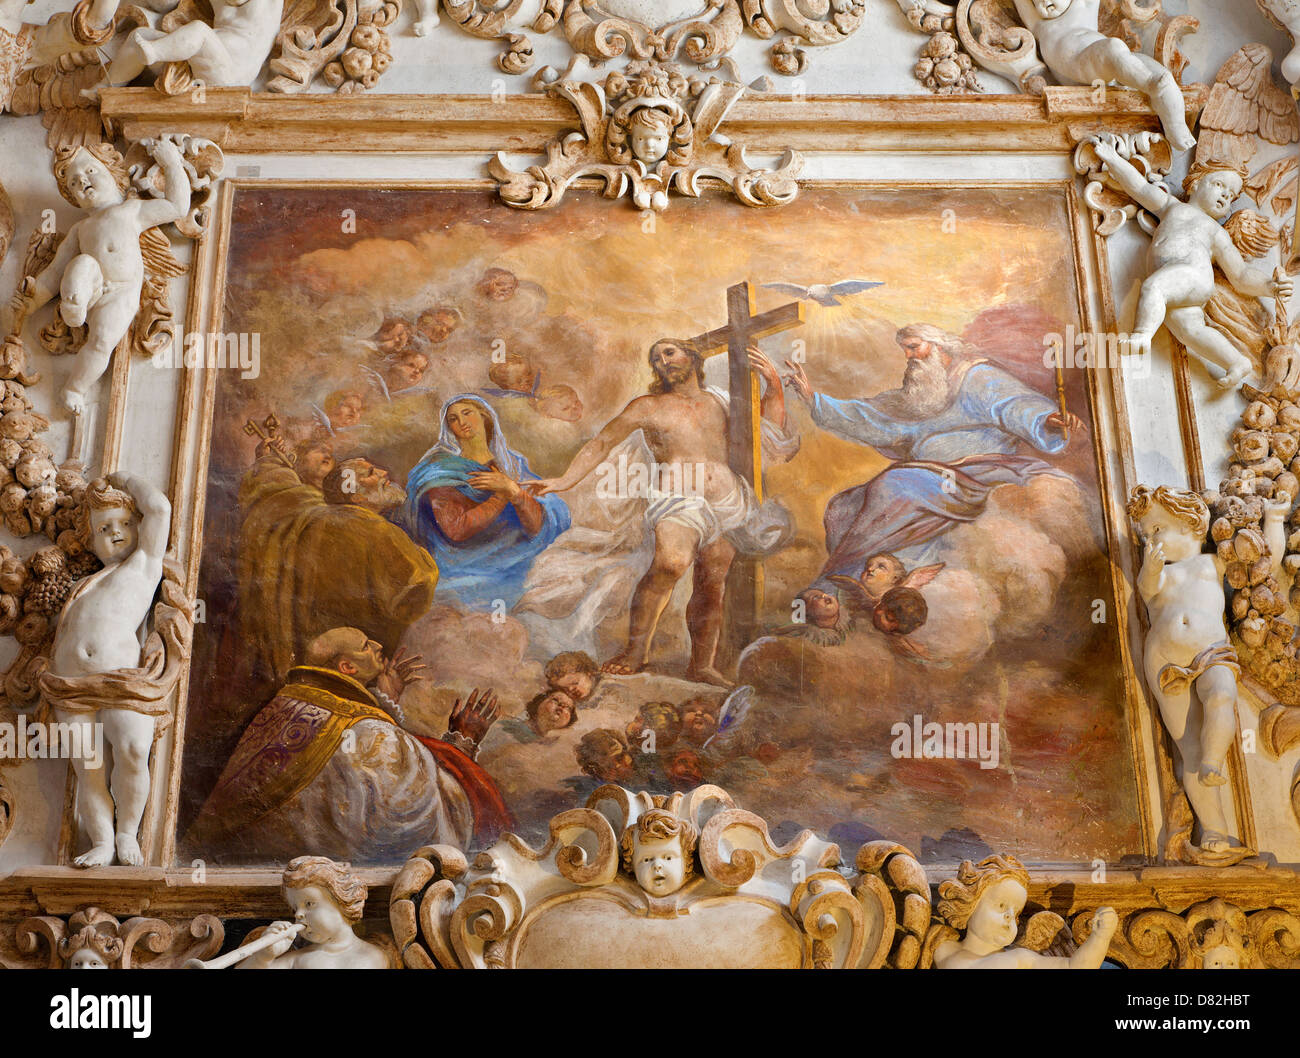 PALERMO - APRIL 8: Fresco of Holy Trinity from side nave in church La chiesa del Gesu - Stock Image